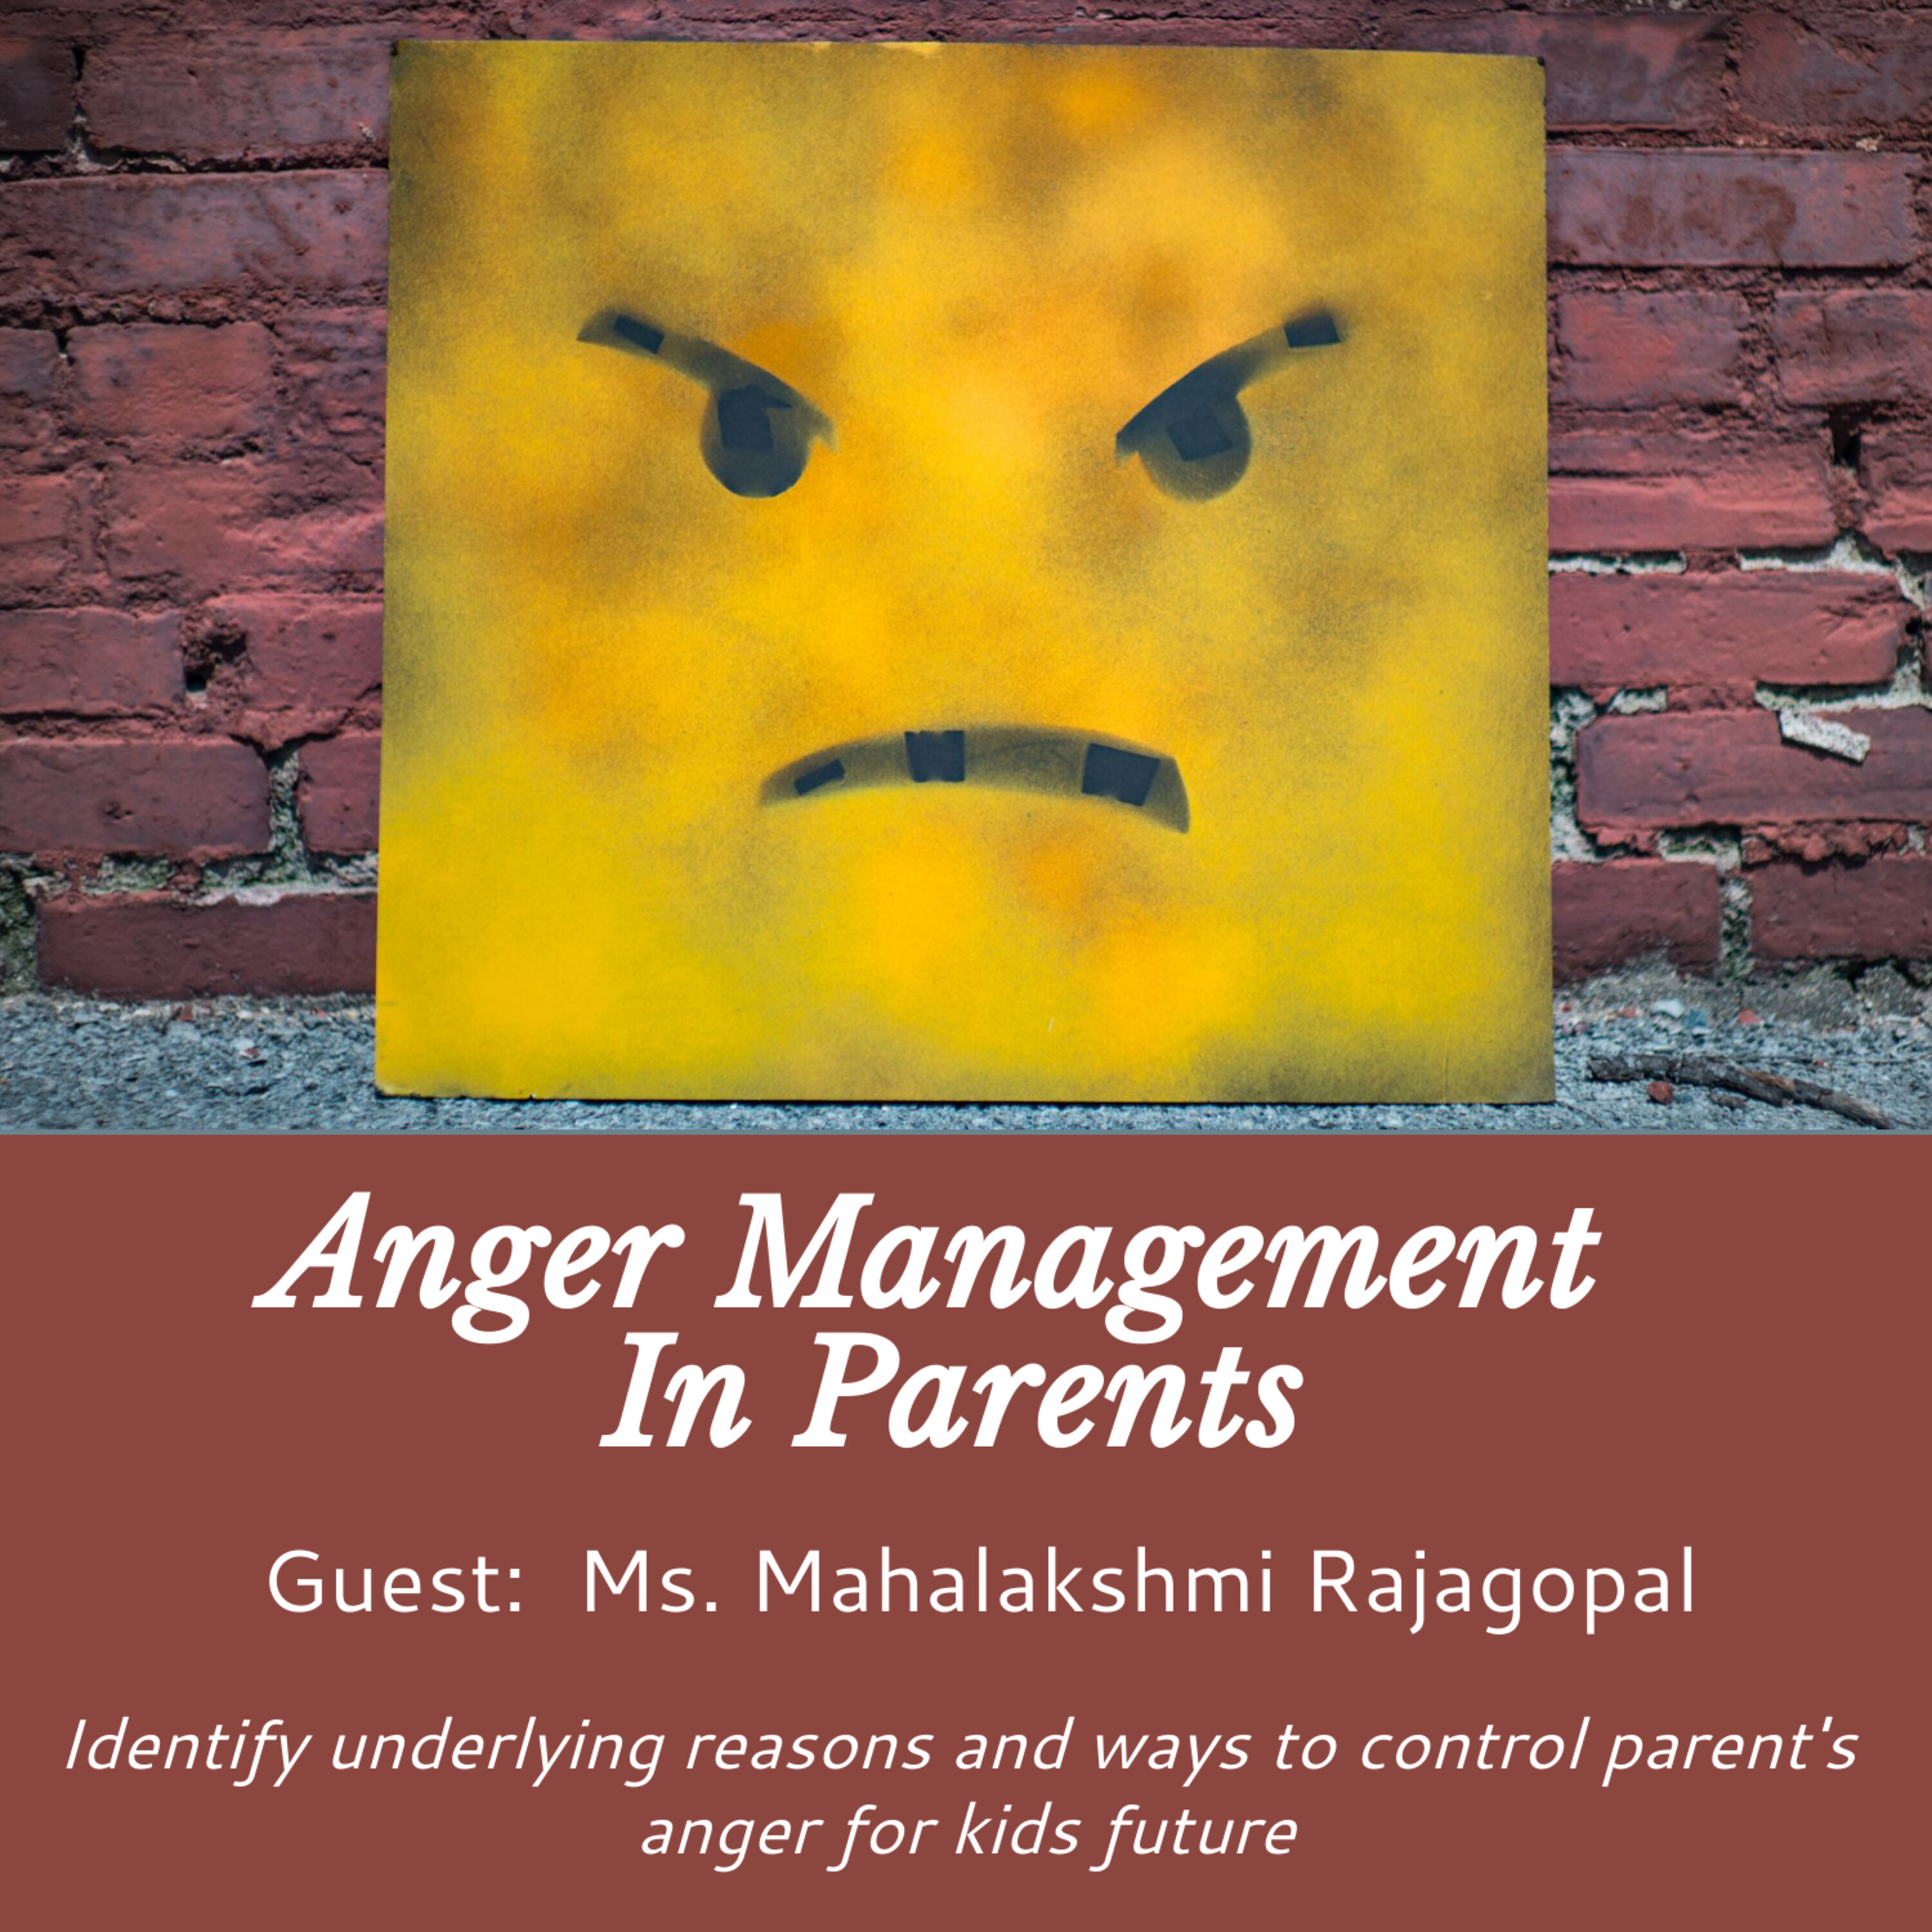 Balanced Parenting: Anger Management in Parents